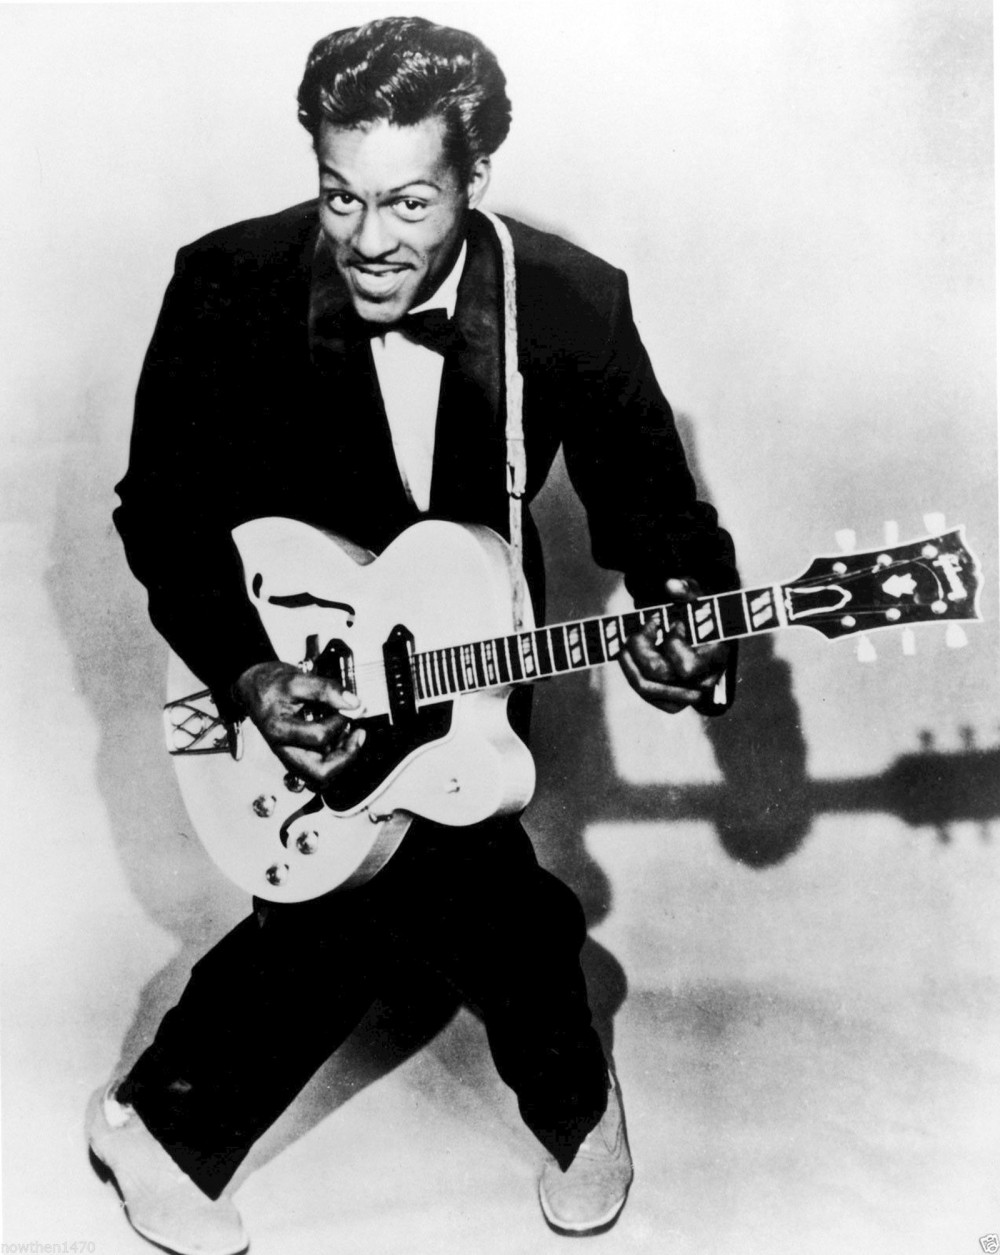 While an accepted part of culture in the twenty-first century, Rock and Roll music was seen by many as devilish, having a corruptive influence on the youth of America. Chuck Berry defined the rhythm and style that made Rock and Roll so distinctive and irresistible. Publicity photo, c, 1971. Wikimedia, http://commons.wikimedia.org/wiki/File:Chuck_Berry_1971.JPG.